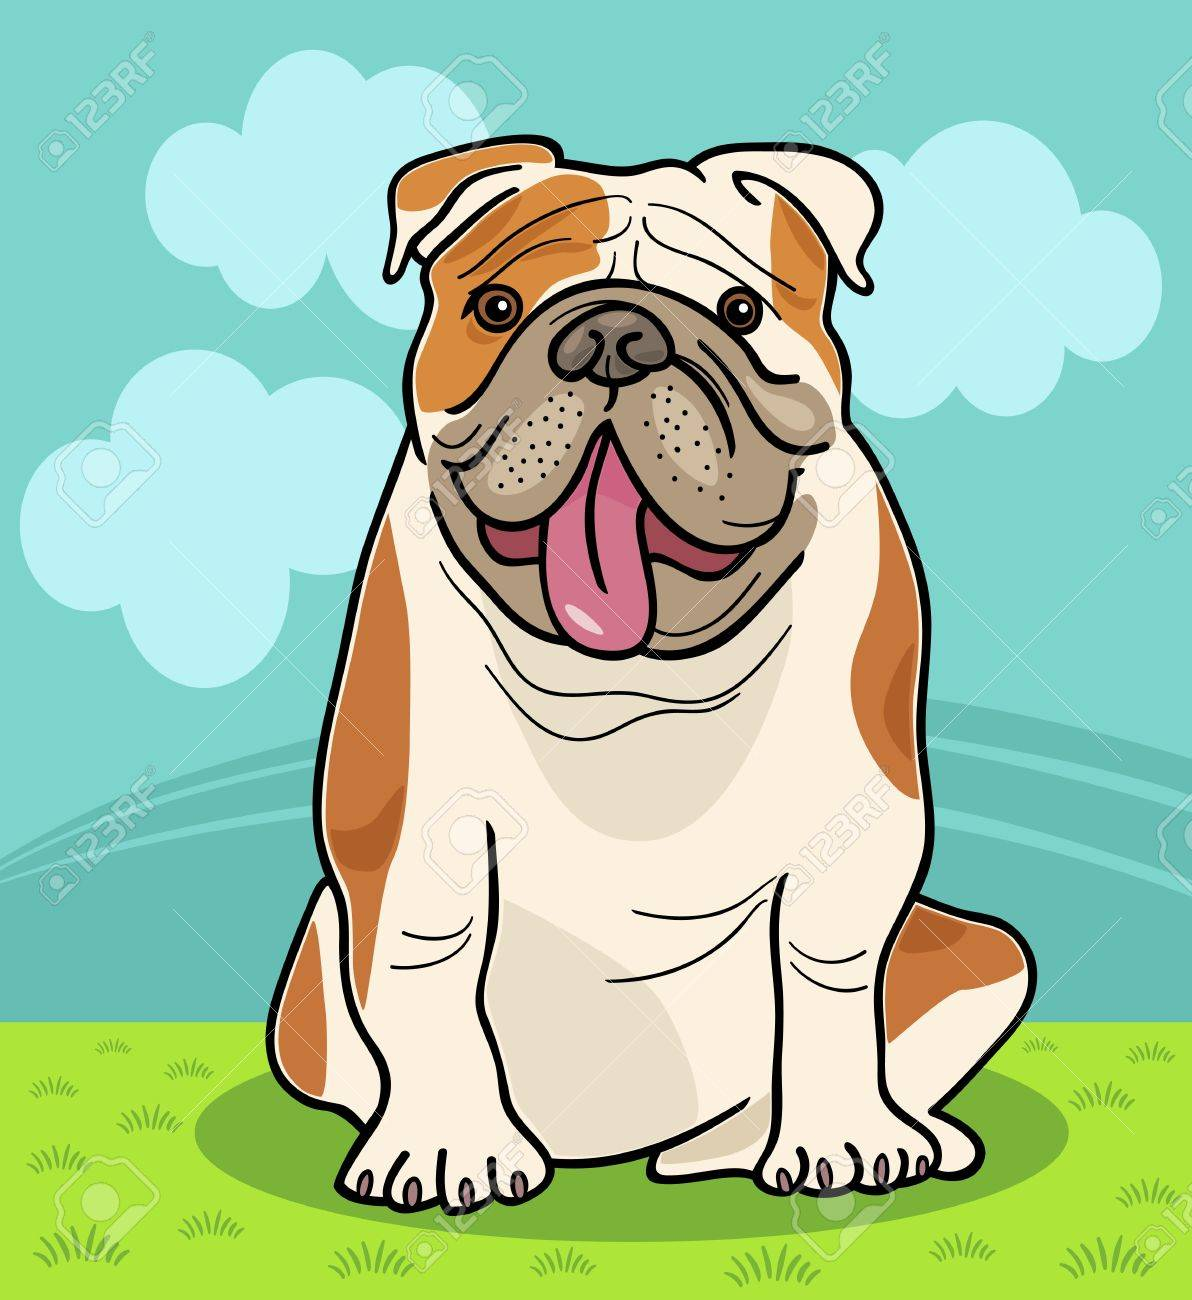 Cartoon Illustration of Funny English  Dog against Sky with Clouds Stock Vector - 16789720